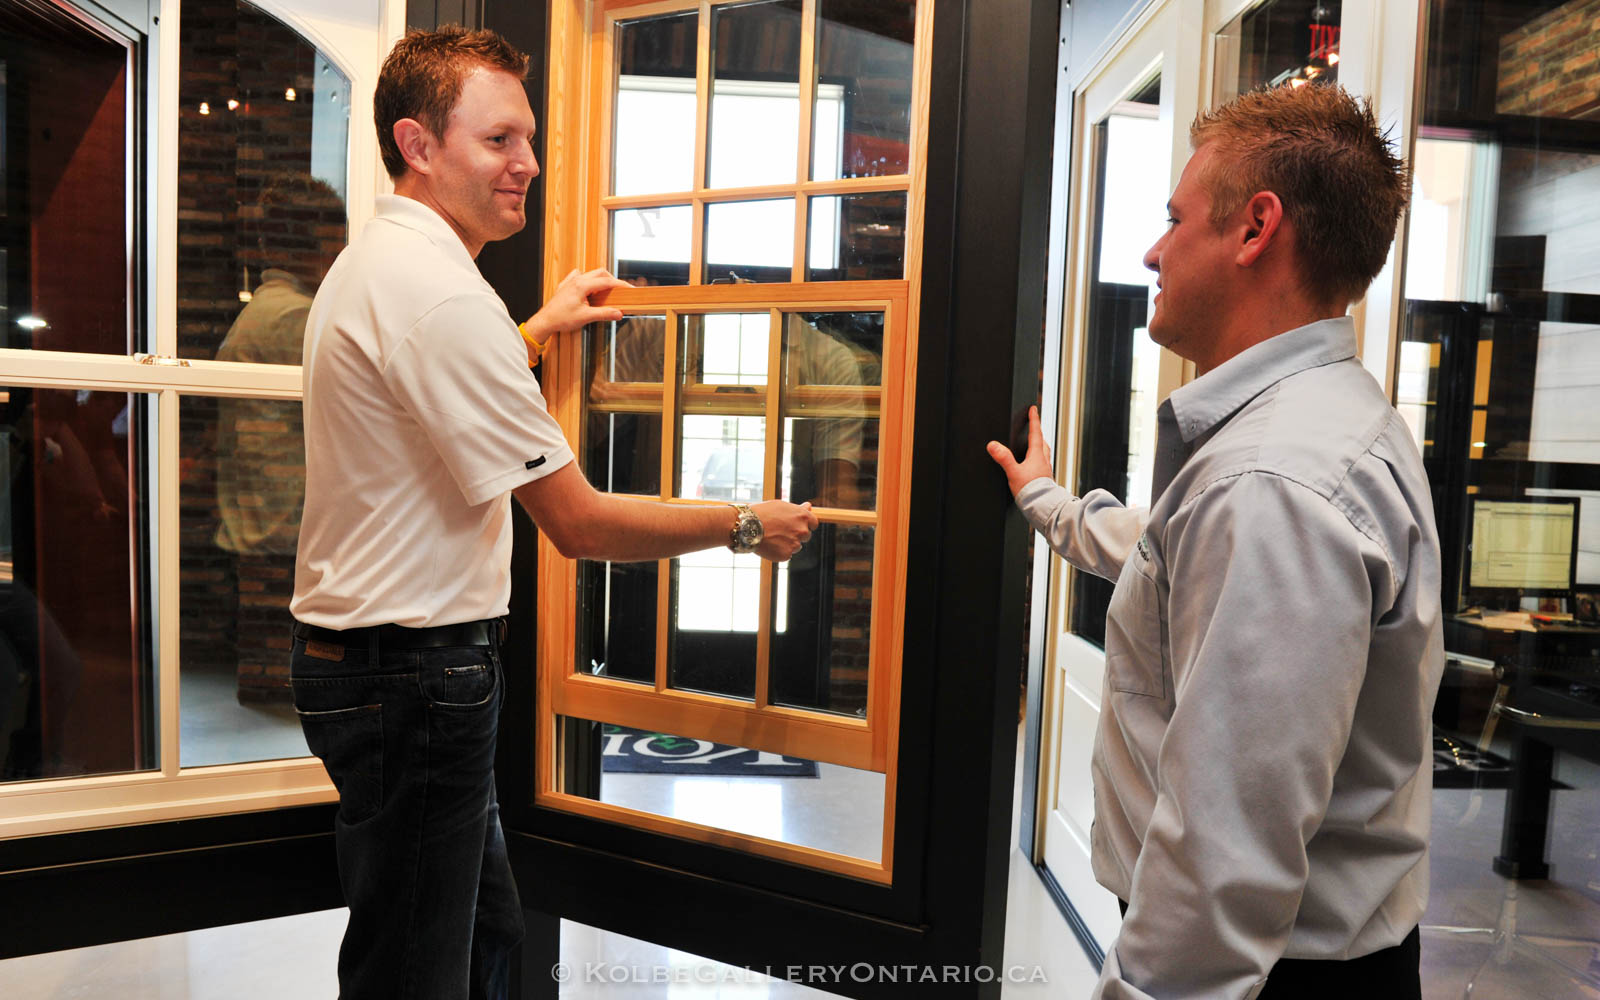 KolbeGalleryOntario.ca-windows-and-doors-Oakville-showroom-20120510-101422